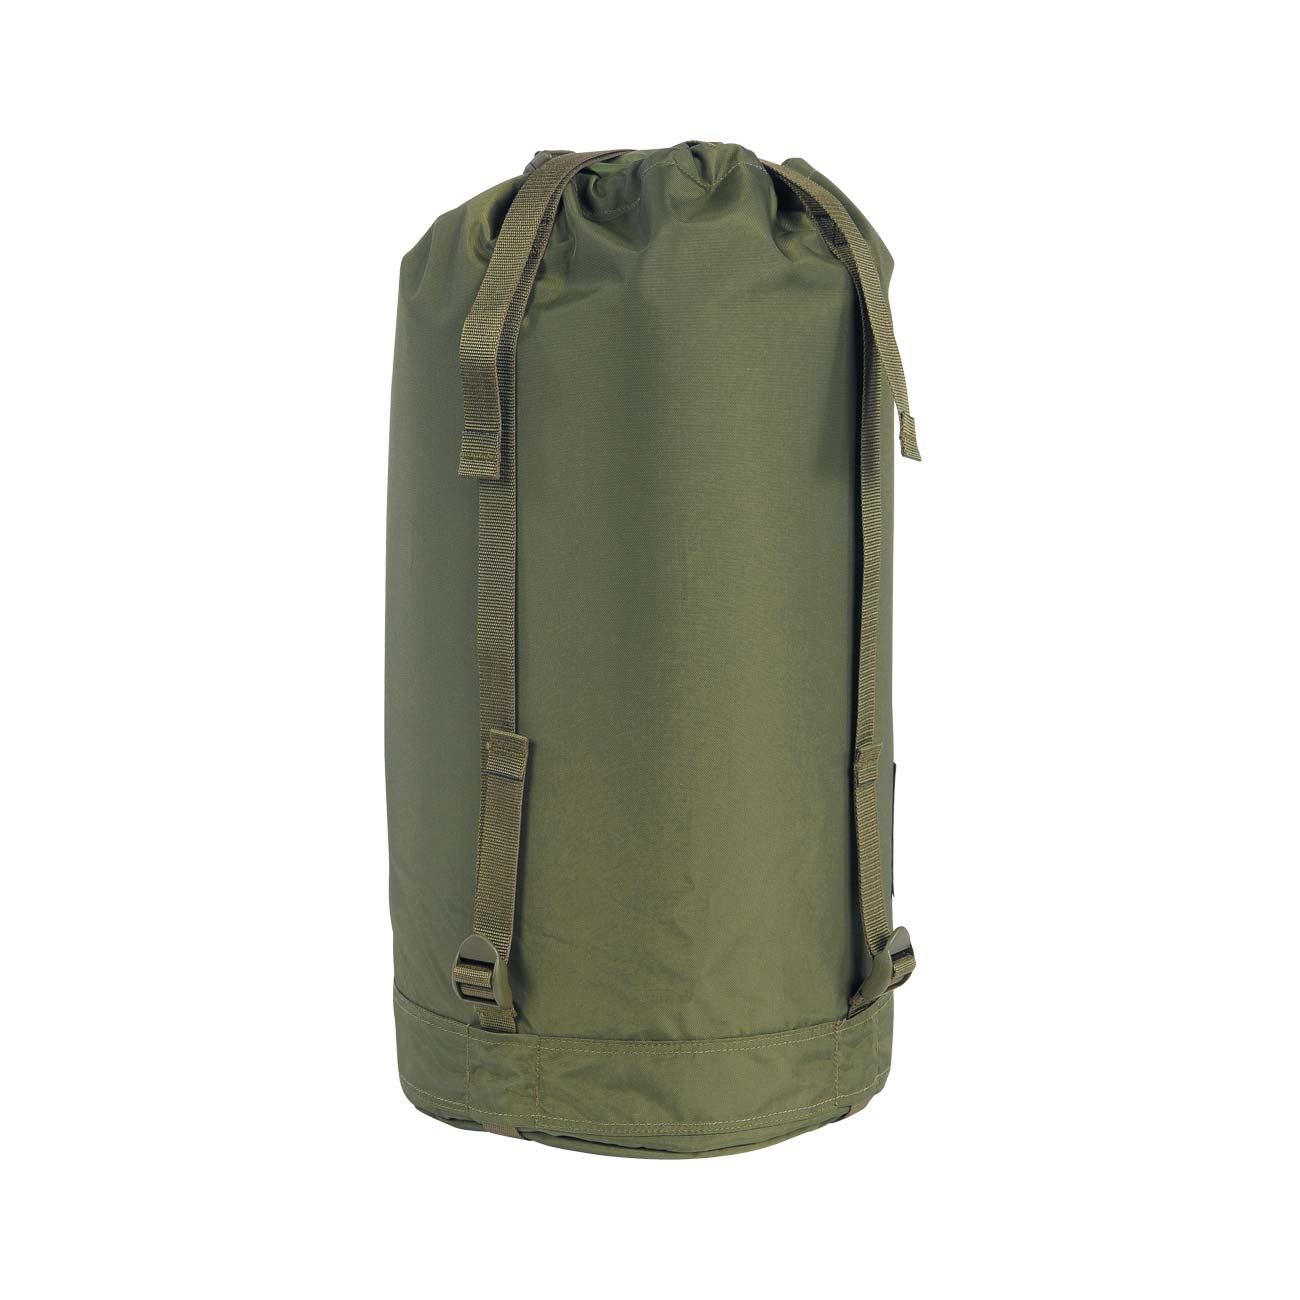 Tasmanian Tiger Kompressionssack Compression Bag M 20 Liter oliv 1